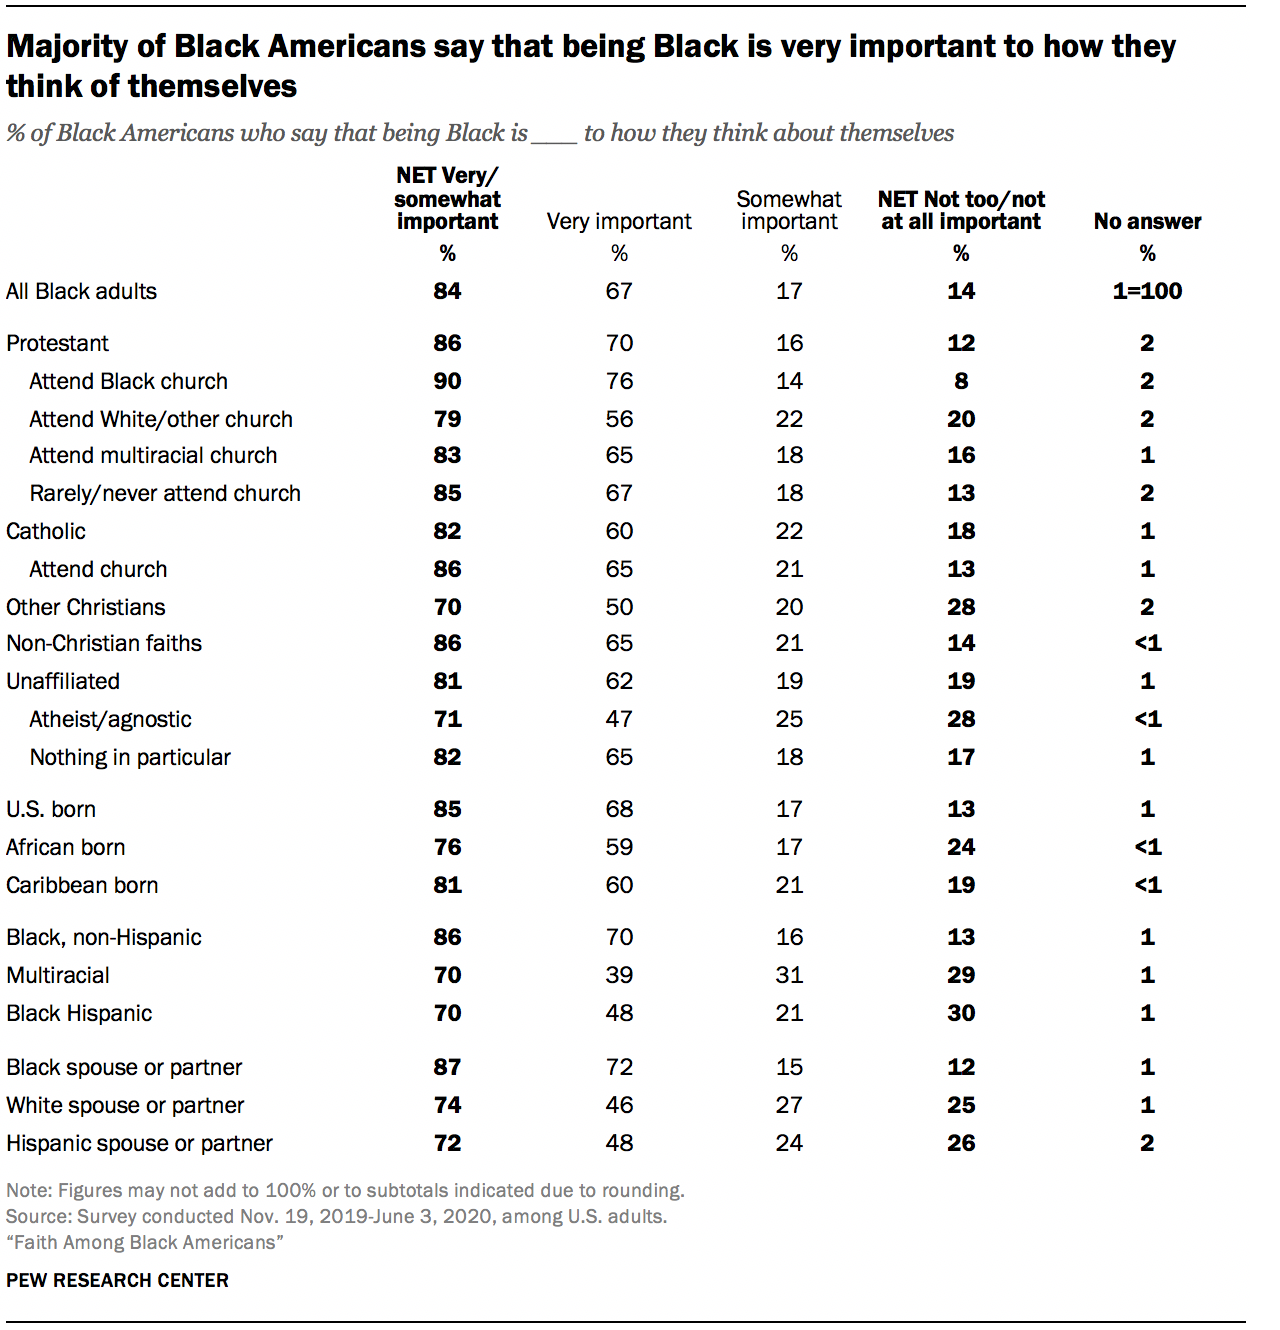 Majority of Black Americans say that being Black is very important to how they think of themselves